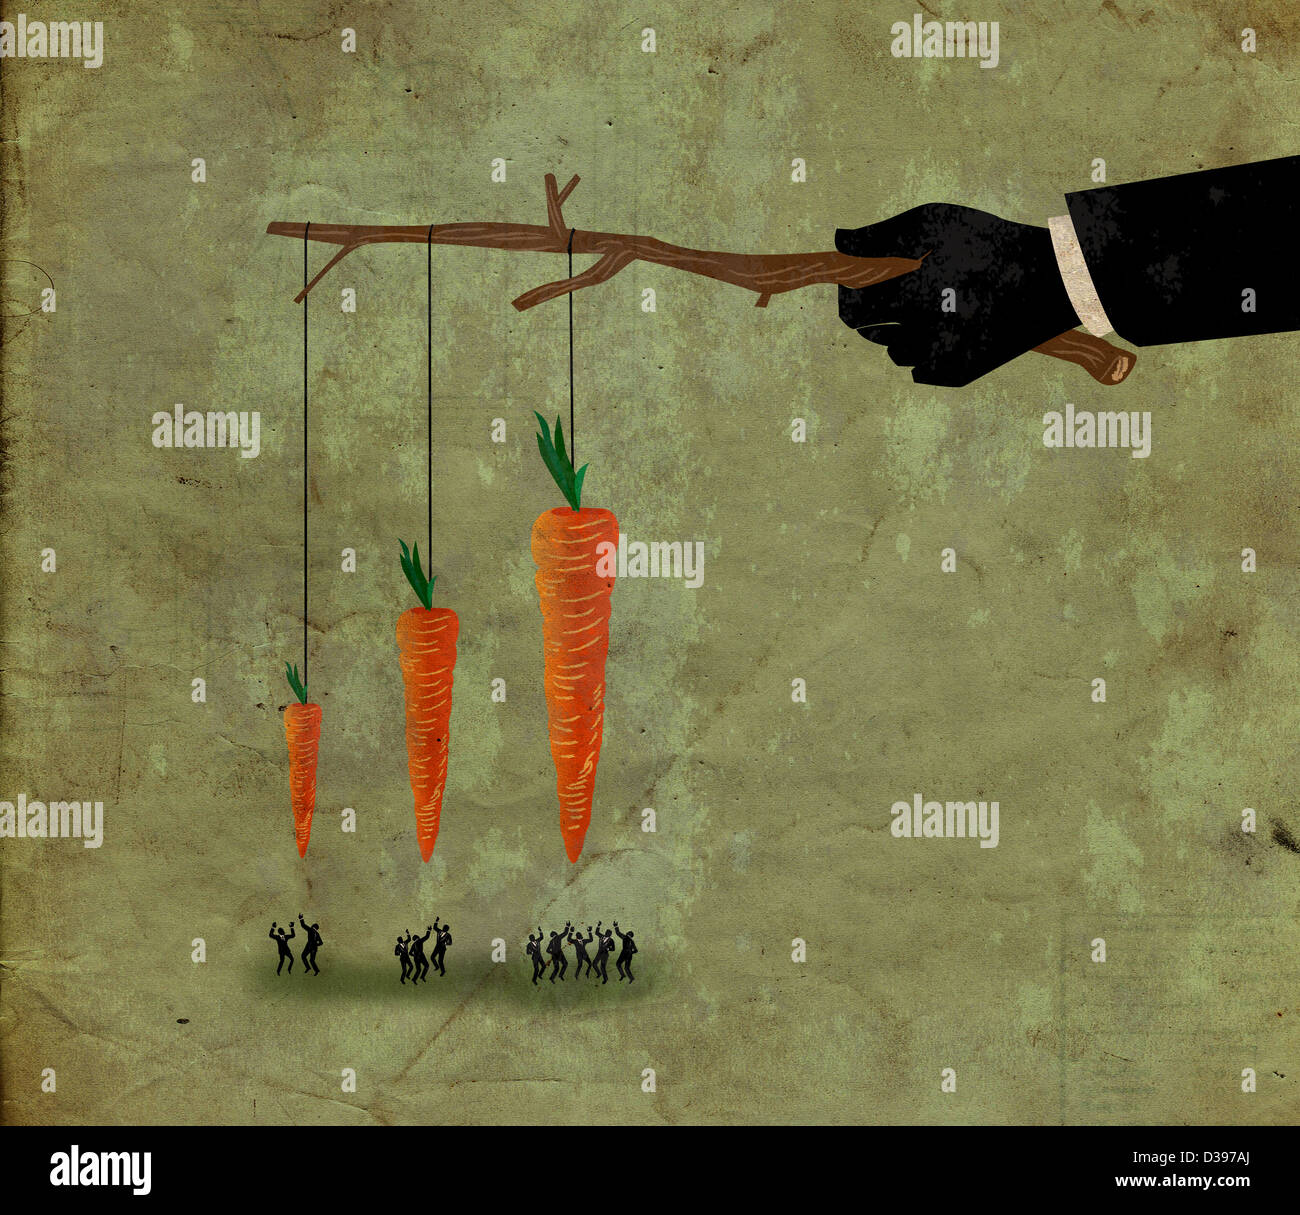 Illustrative shot of business people jumping for carrot depicting competition for incentive Stock Photo